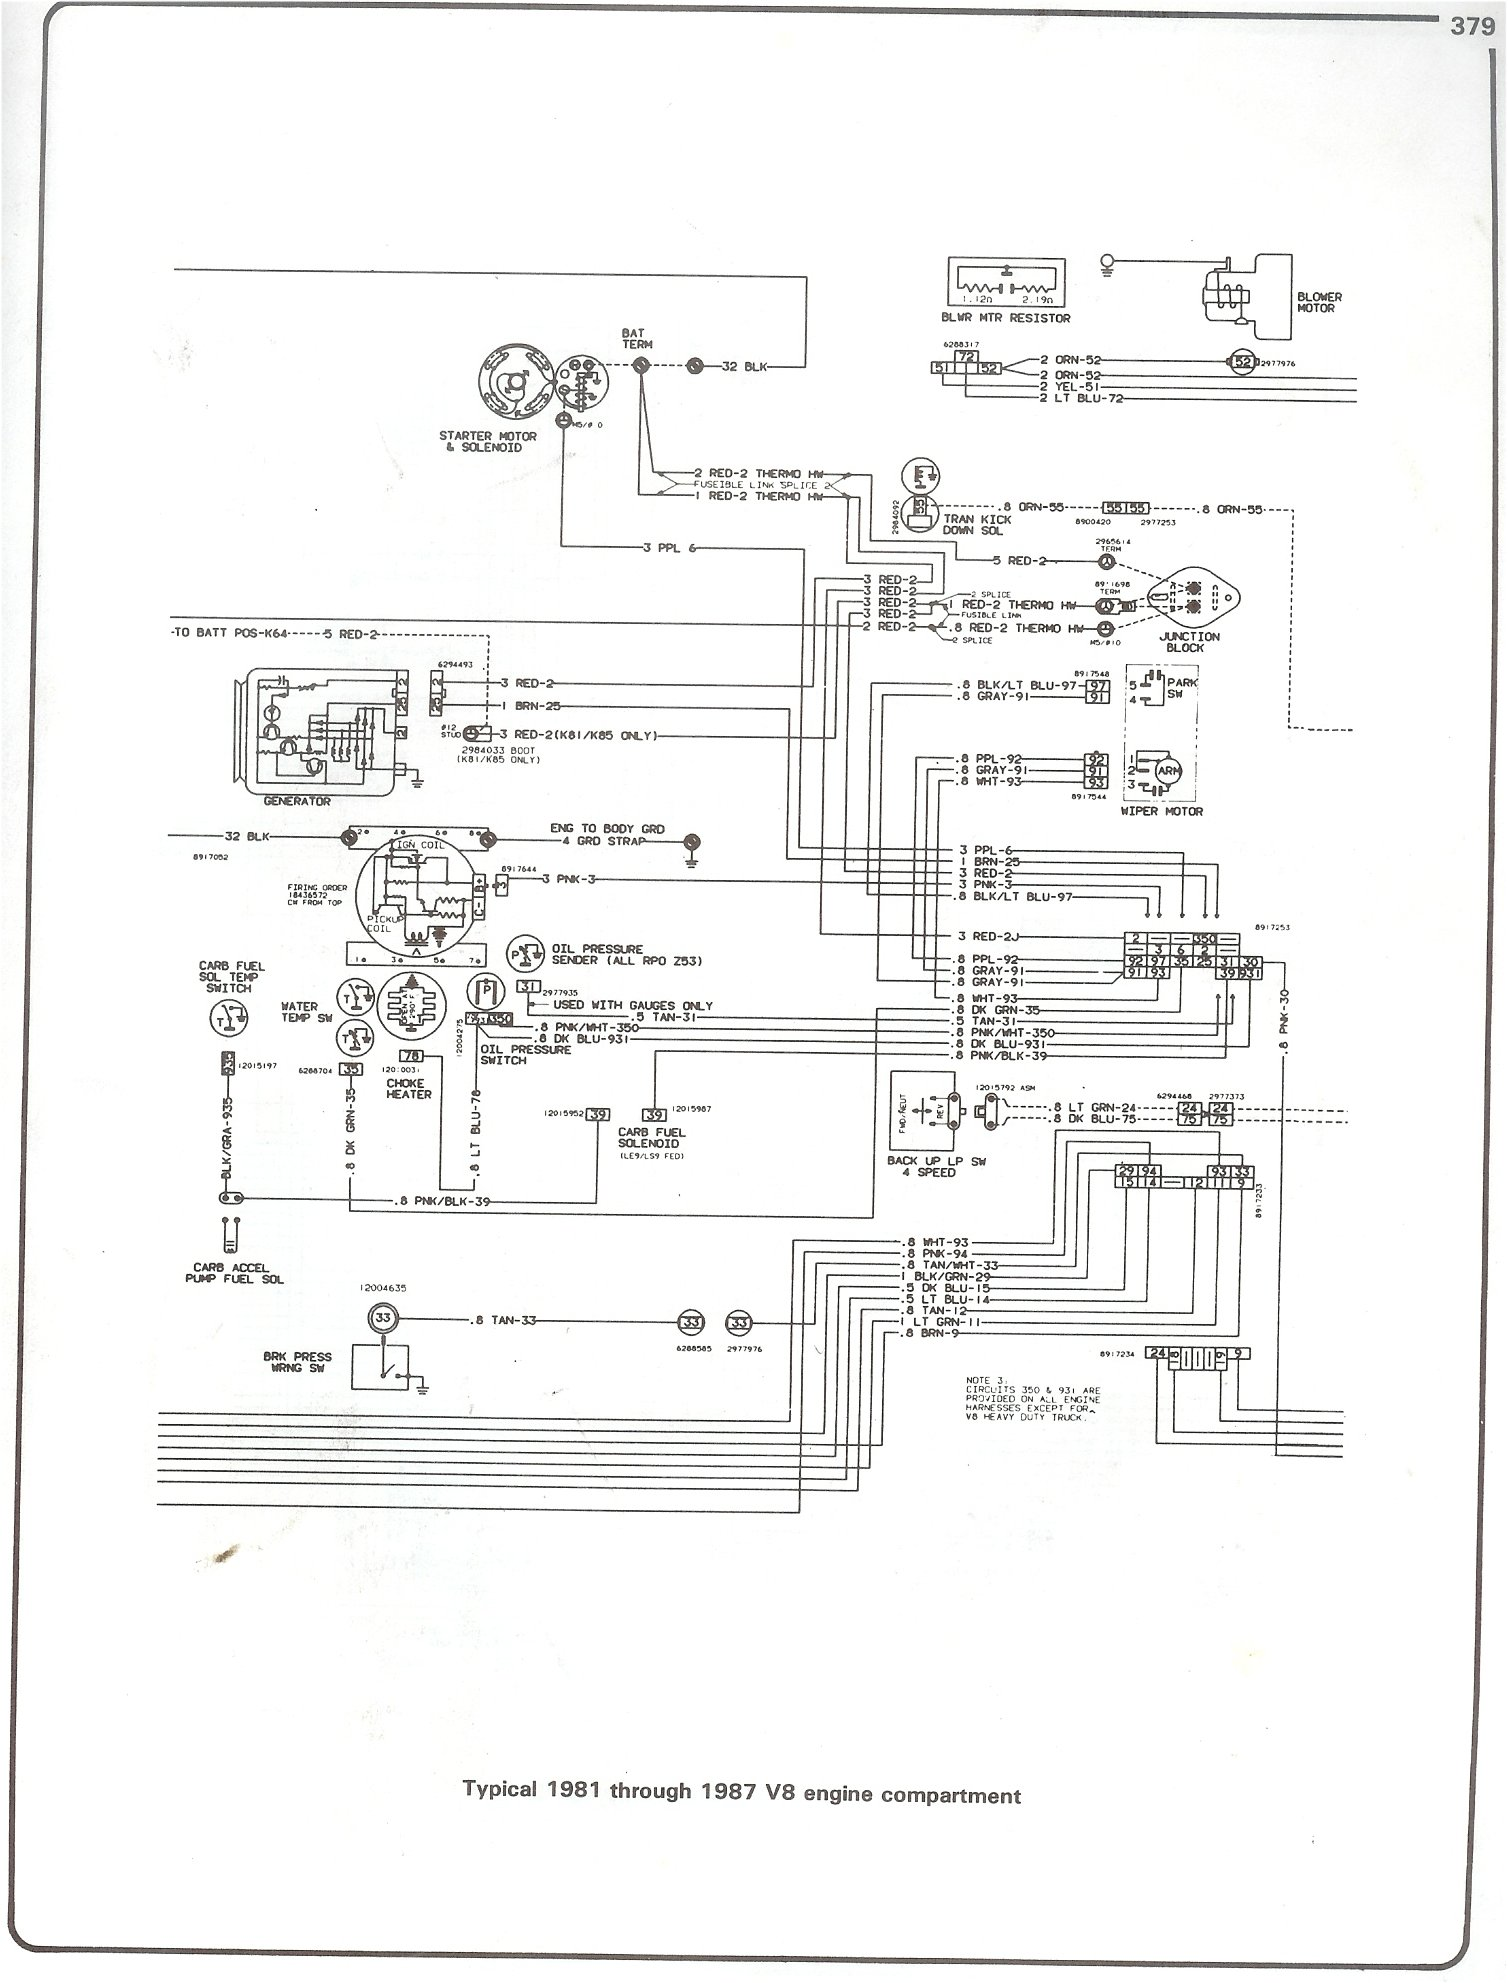 81 87_V8_engine chevy wiring diagrams chevy radio wiring \u2022 wiring diagrams j Chevy HEI Distributor Wiring Diagram at soozxer.org